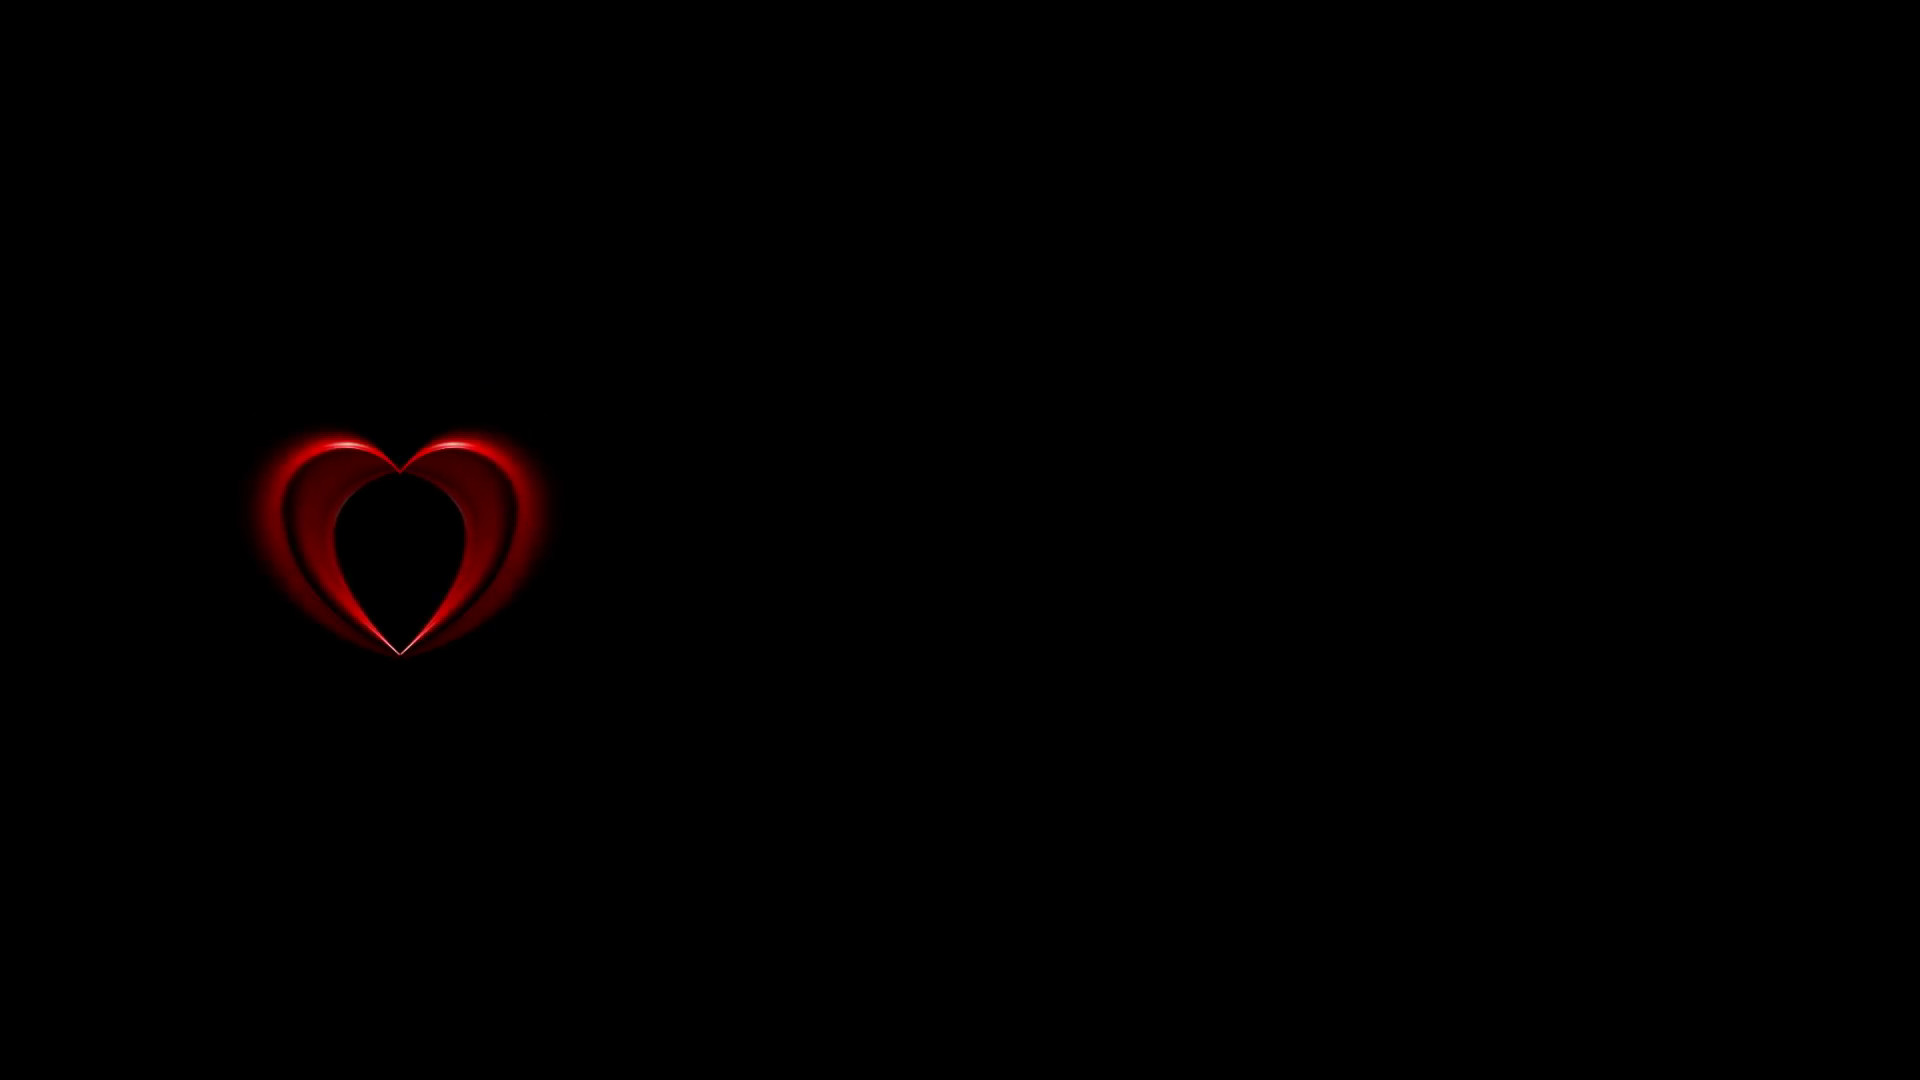 Red Heart Black Background 46 Images